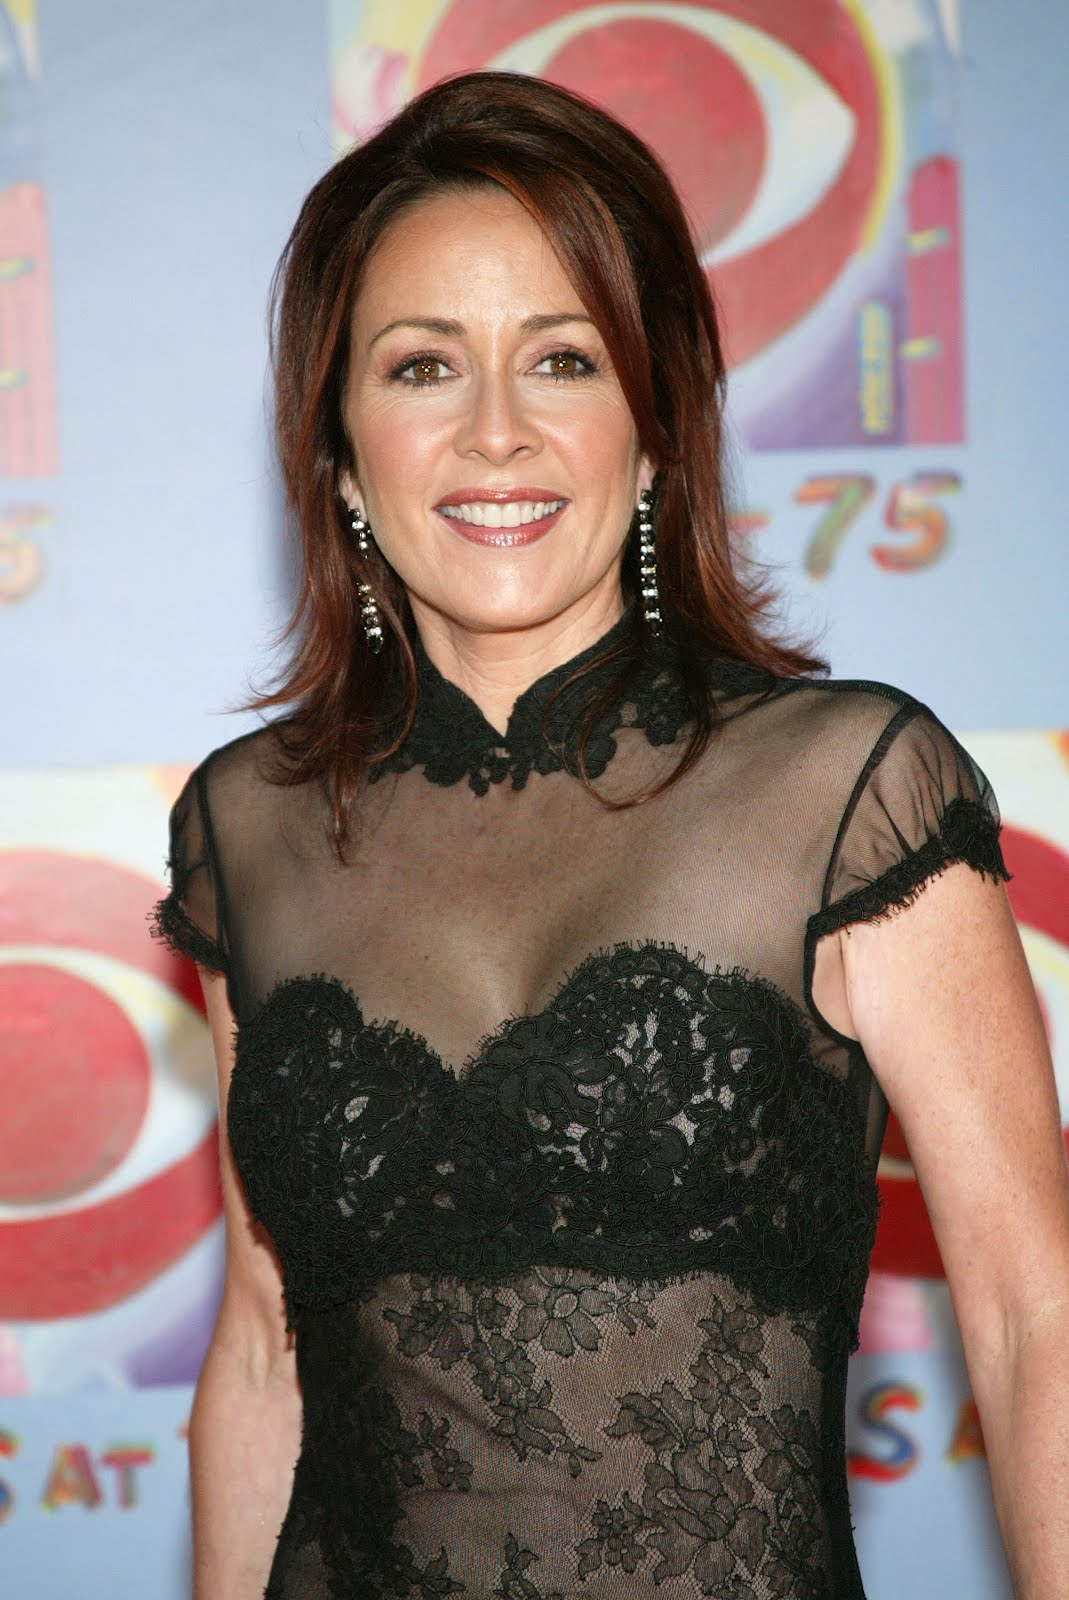 Naked Pictures Of Patricia Heaton